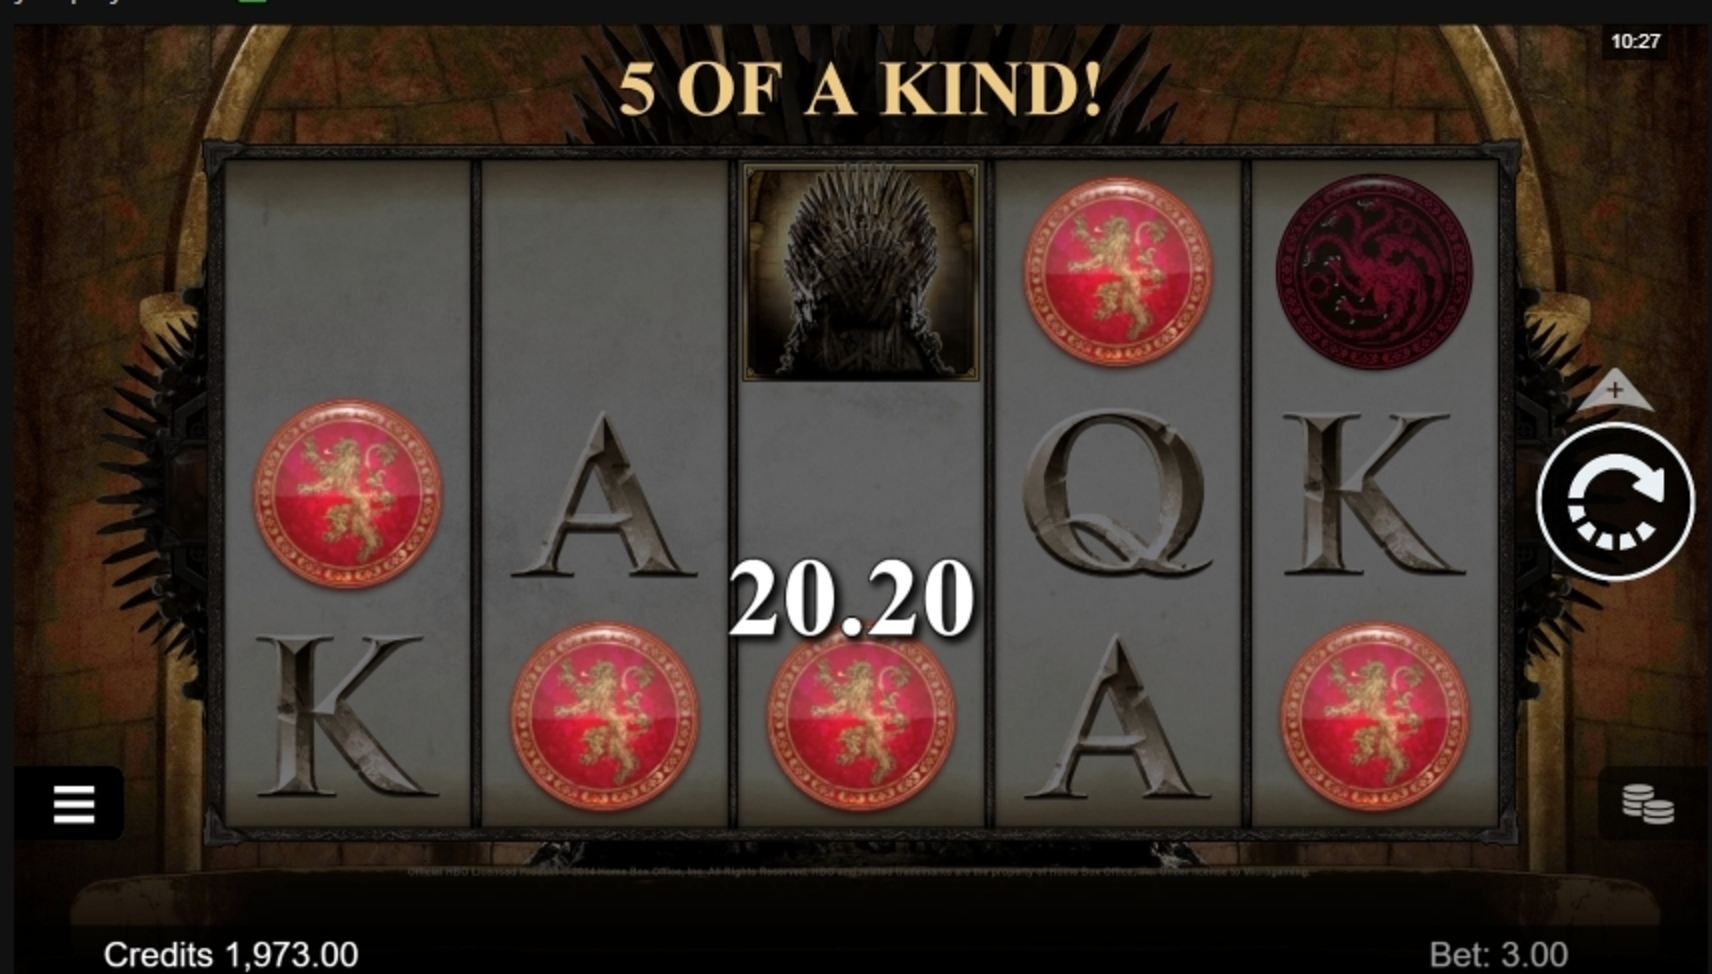 Win Money in Game of Thrones 243 Ways Free Slot Game by Microgaming